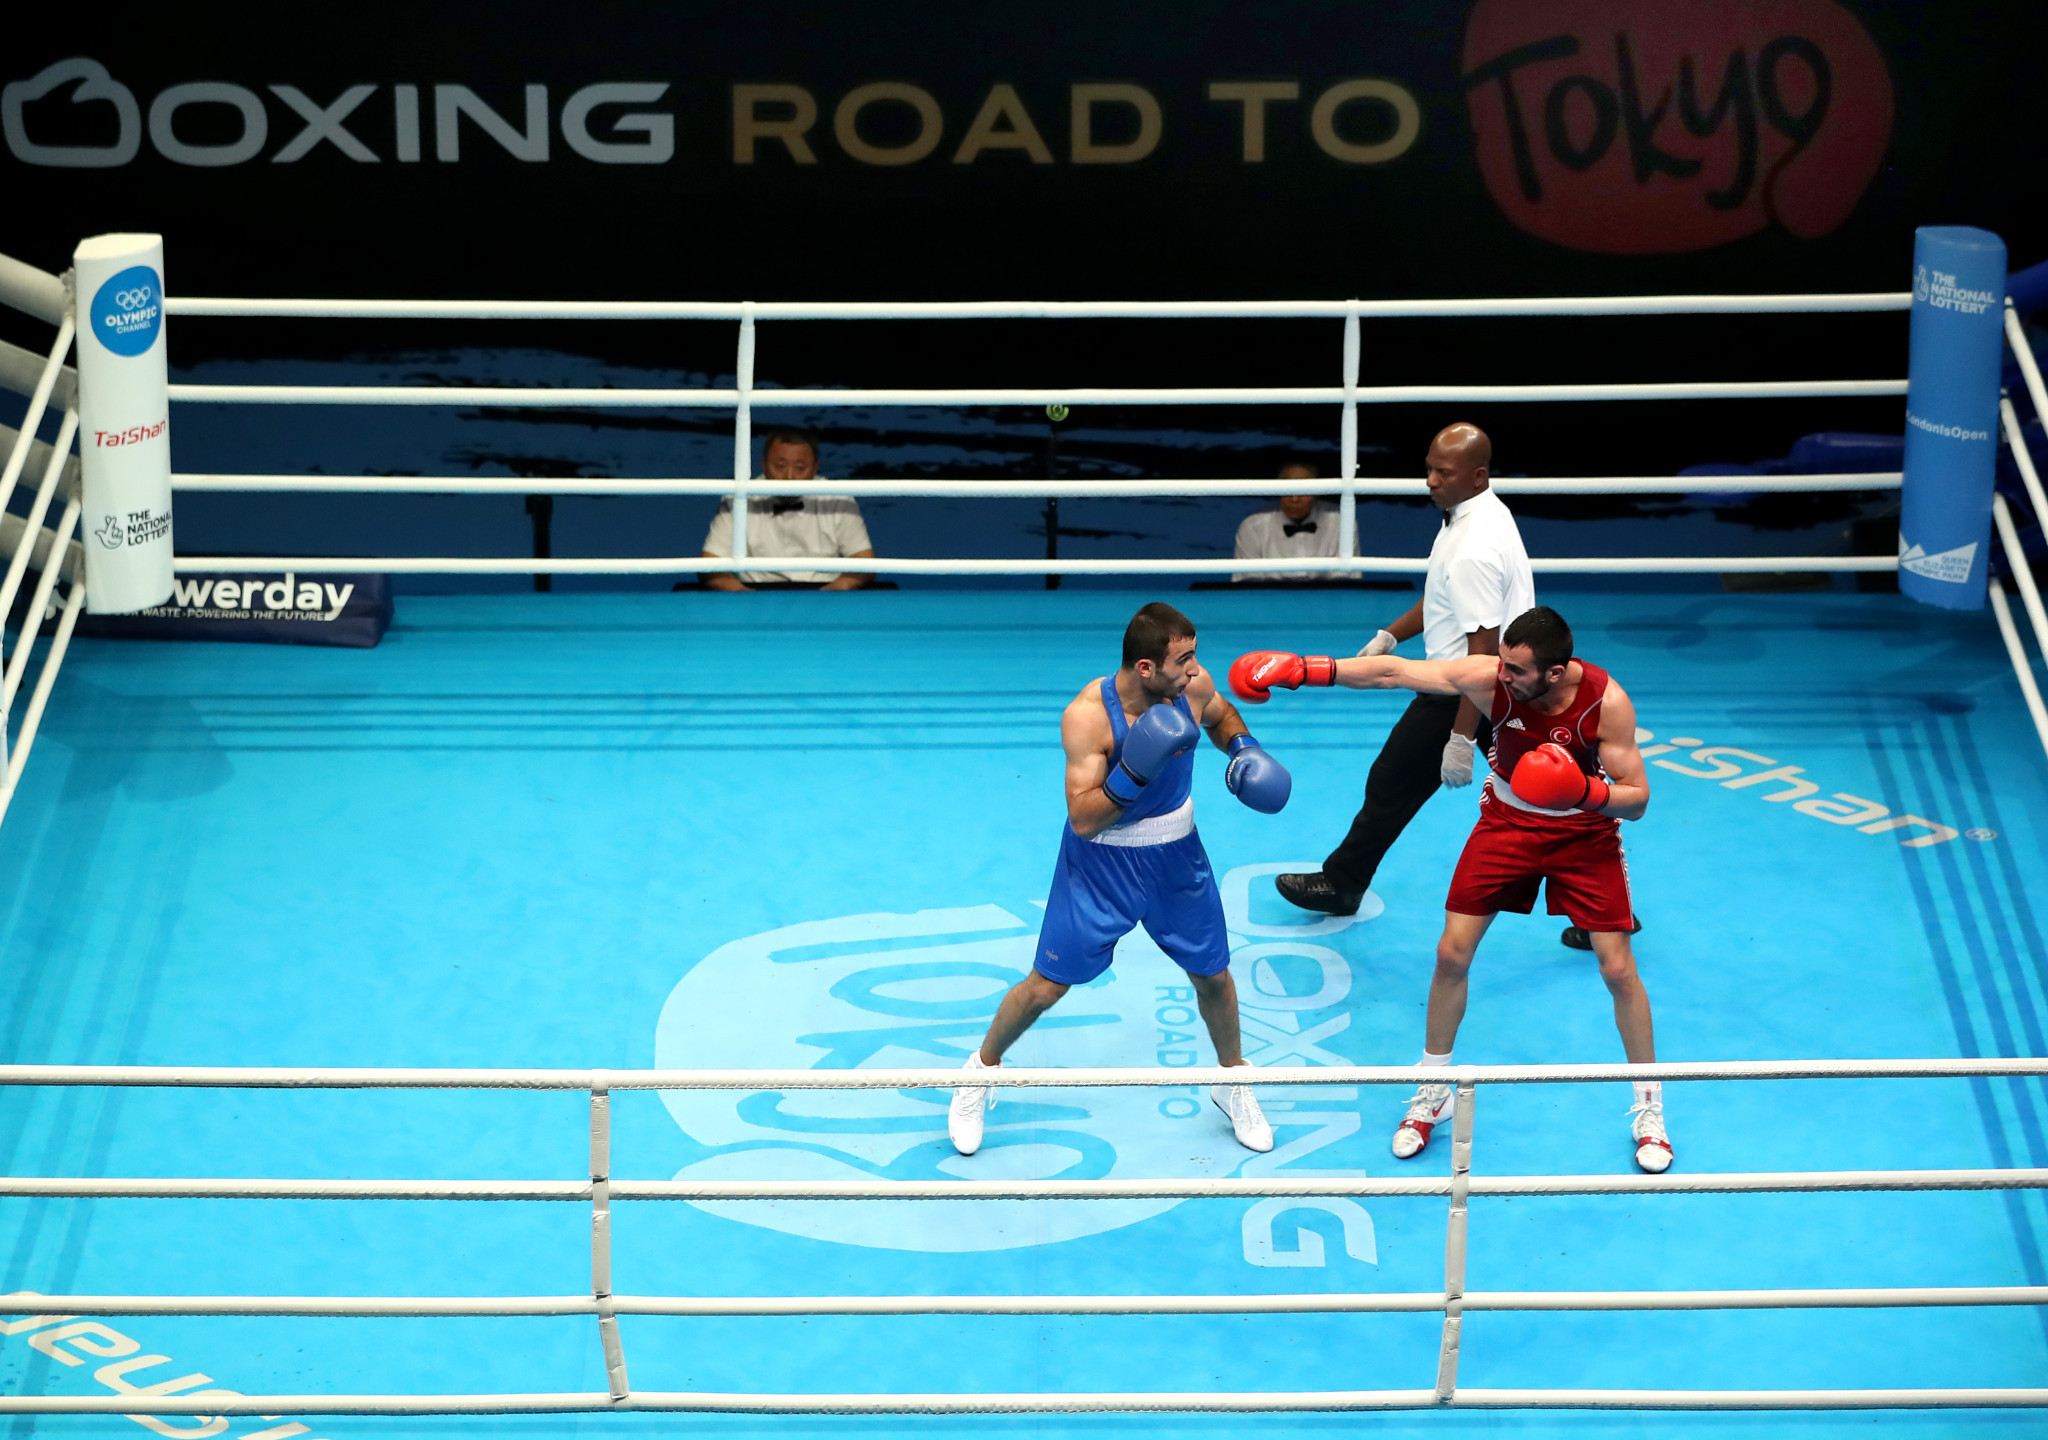 Umar Kremlev used the Tokyo 2020 European boxing qualifier in London as a reason for his doubts about Tokyo 2020 ©Getty Images